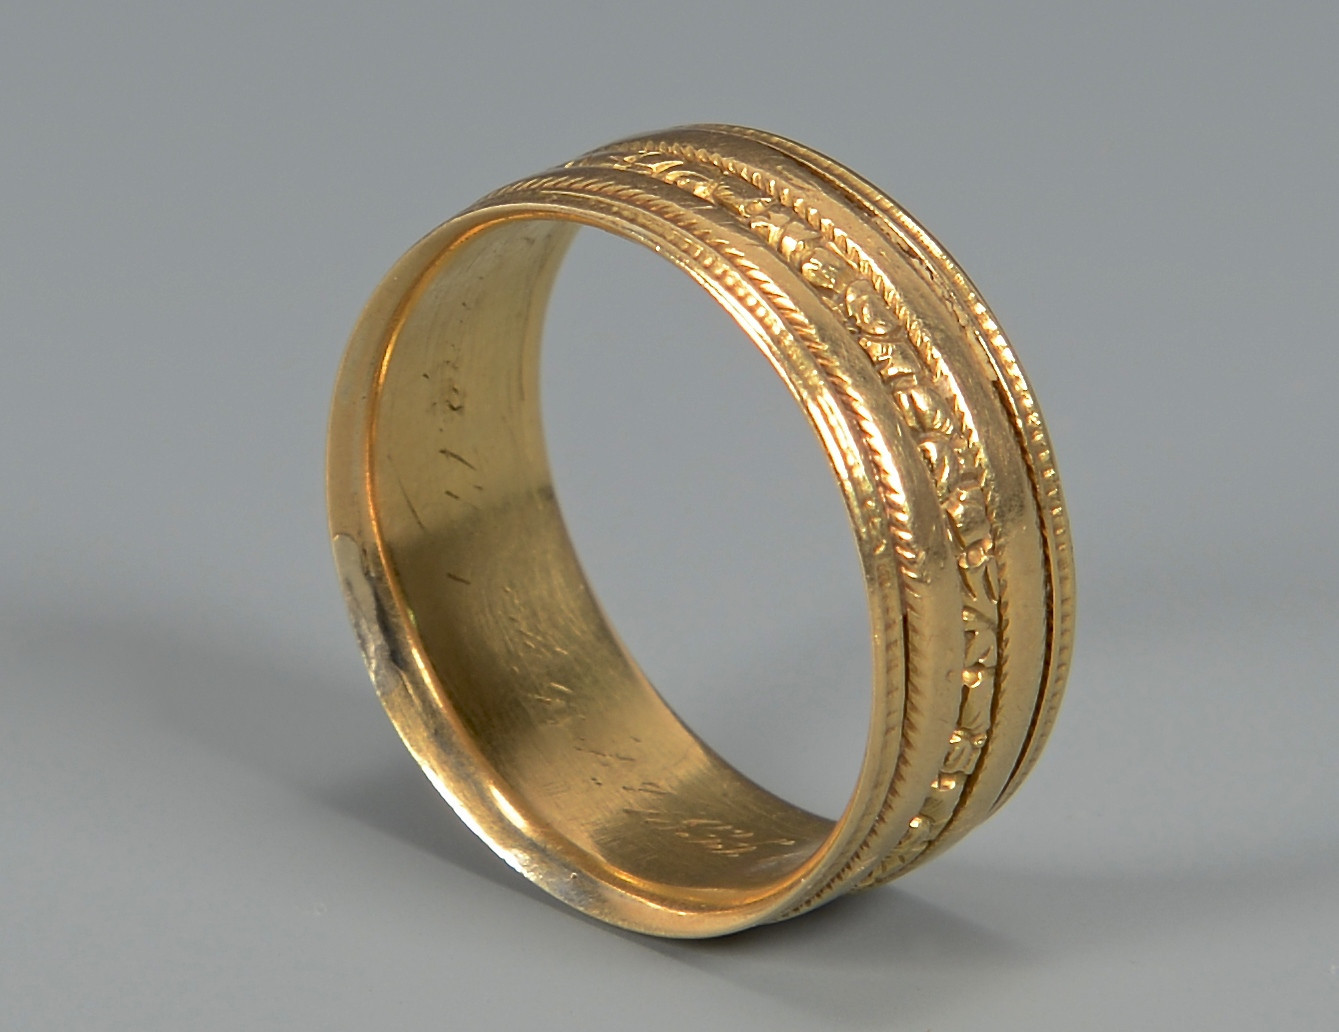 Lot 276: William IV Gold Ring, 18k